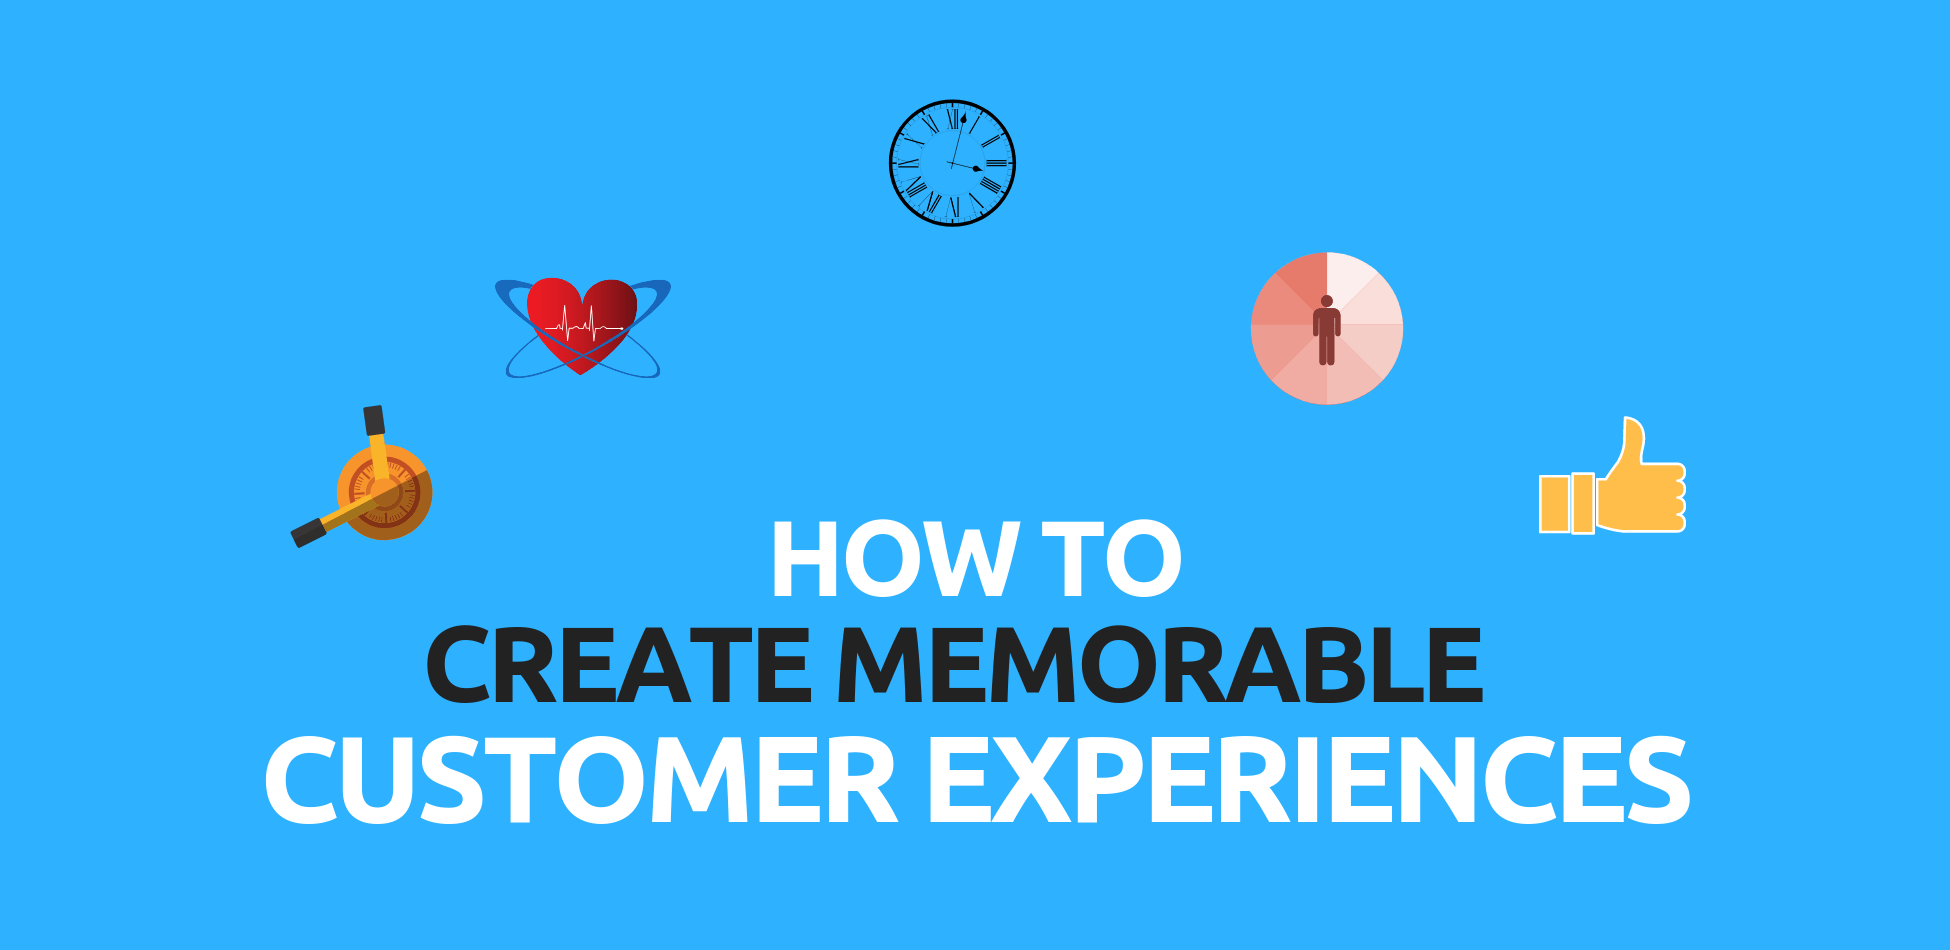 Creating Memorable Customer Experience